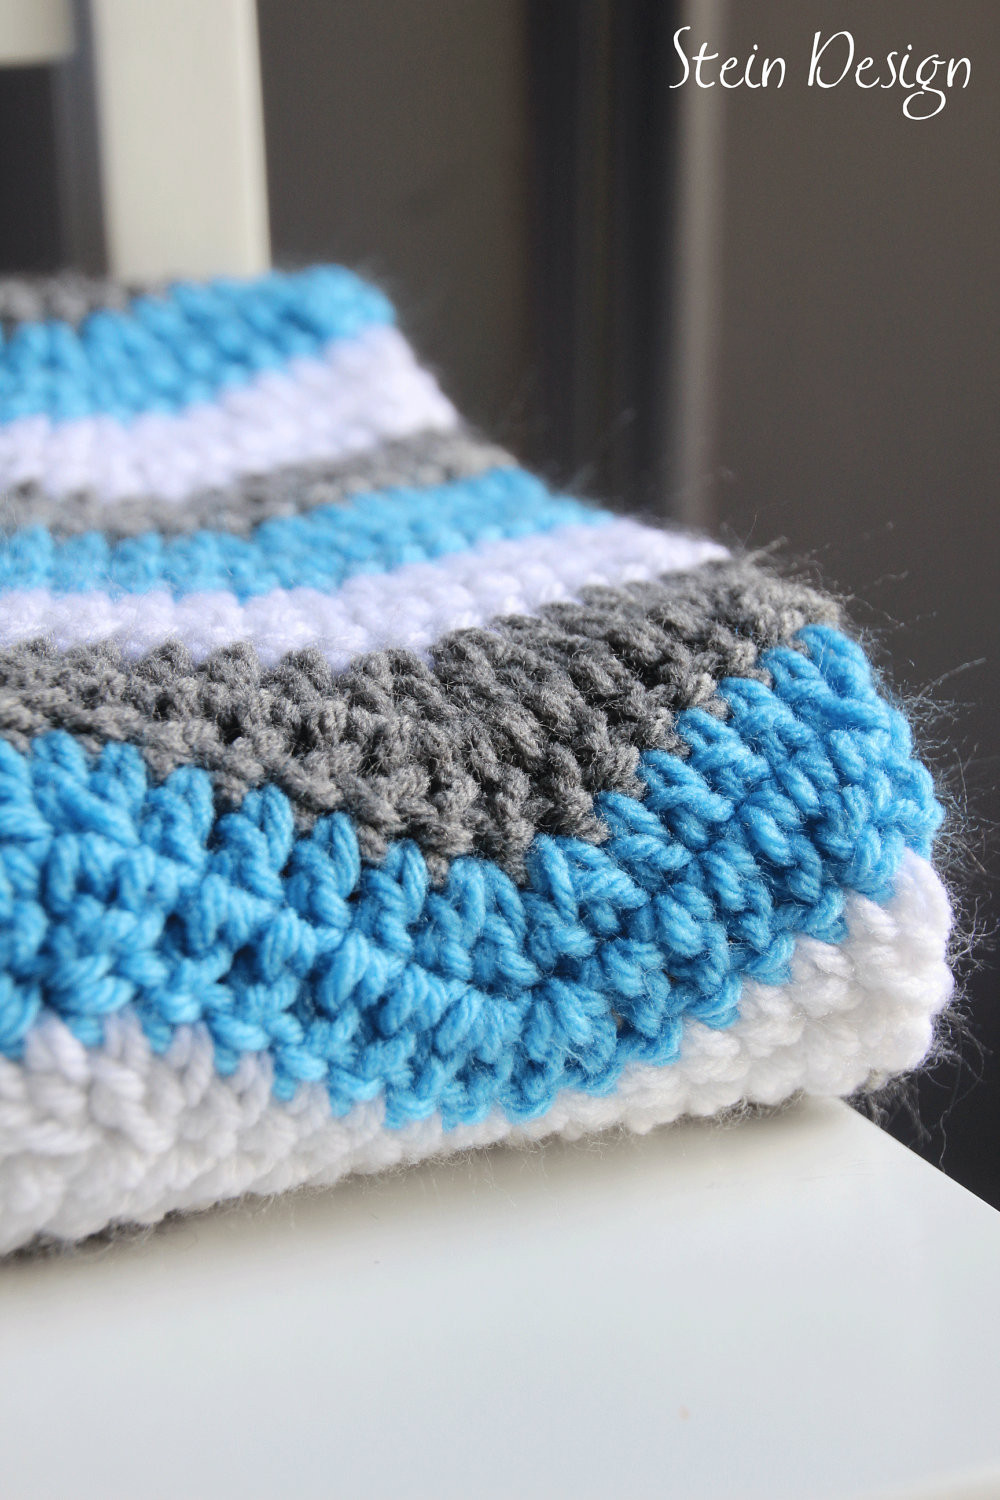 Baby Boy Crochet Blanket Patterns New Free Baby Boy Crochet Blanket Patterns Of Baby Boy Crochet Blanket Patterns Inspirational Turquoise Baby Blanket Chunky Crochet Blanket for Baby Boy